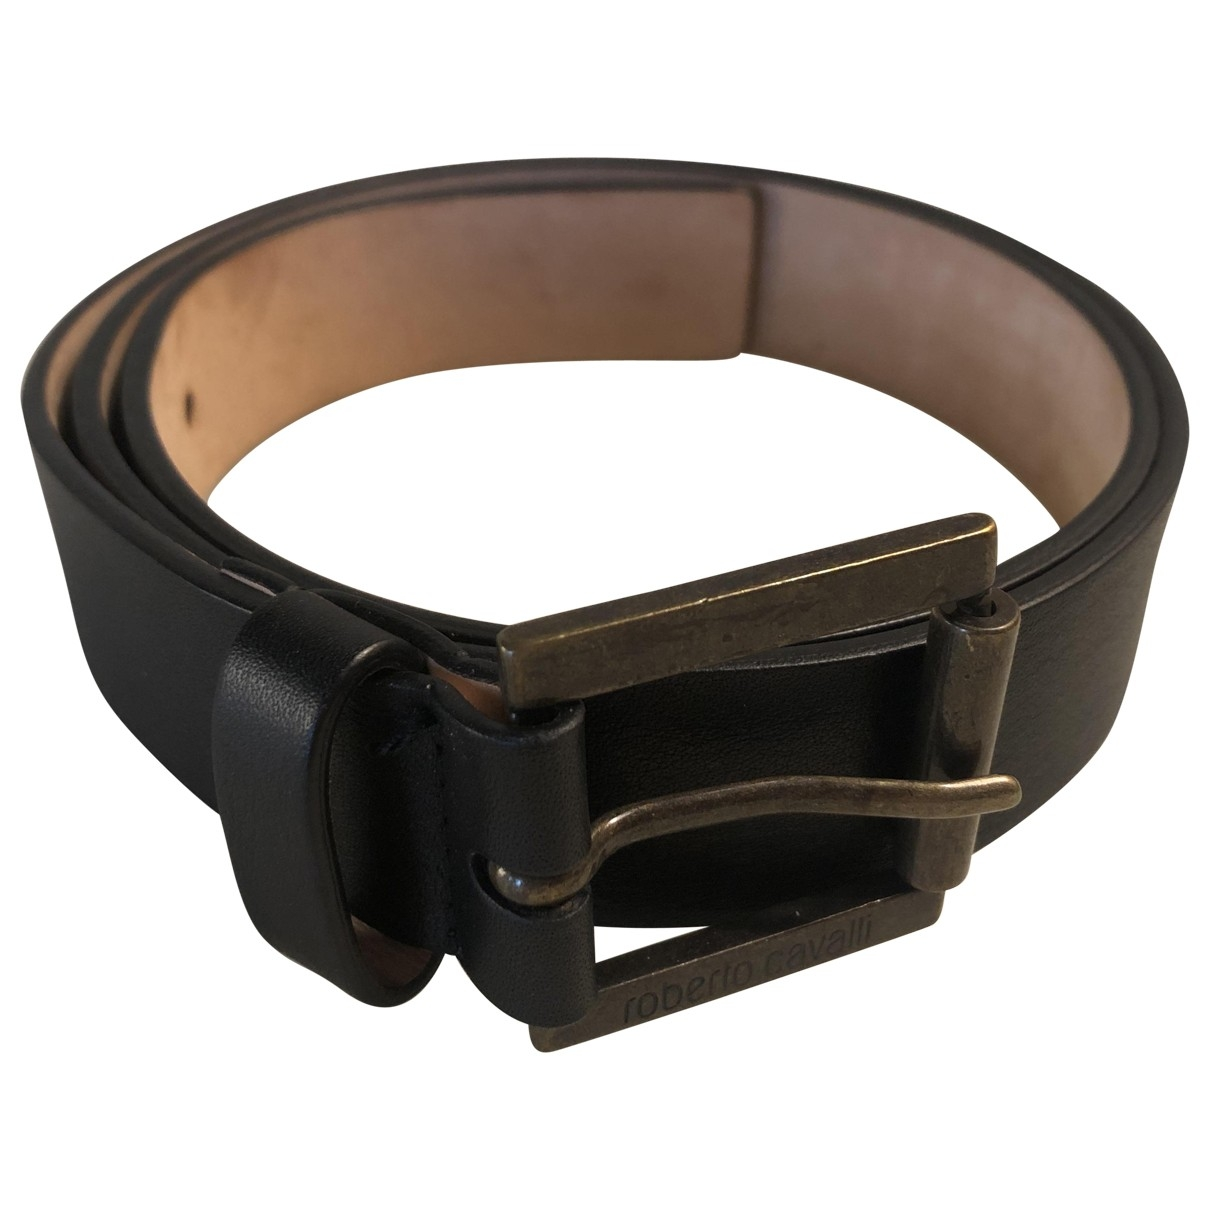 Roberto Cavalli \N Brown Leather belt for Women 85 cm